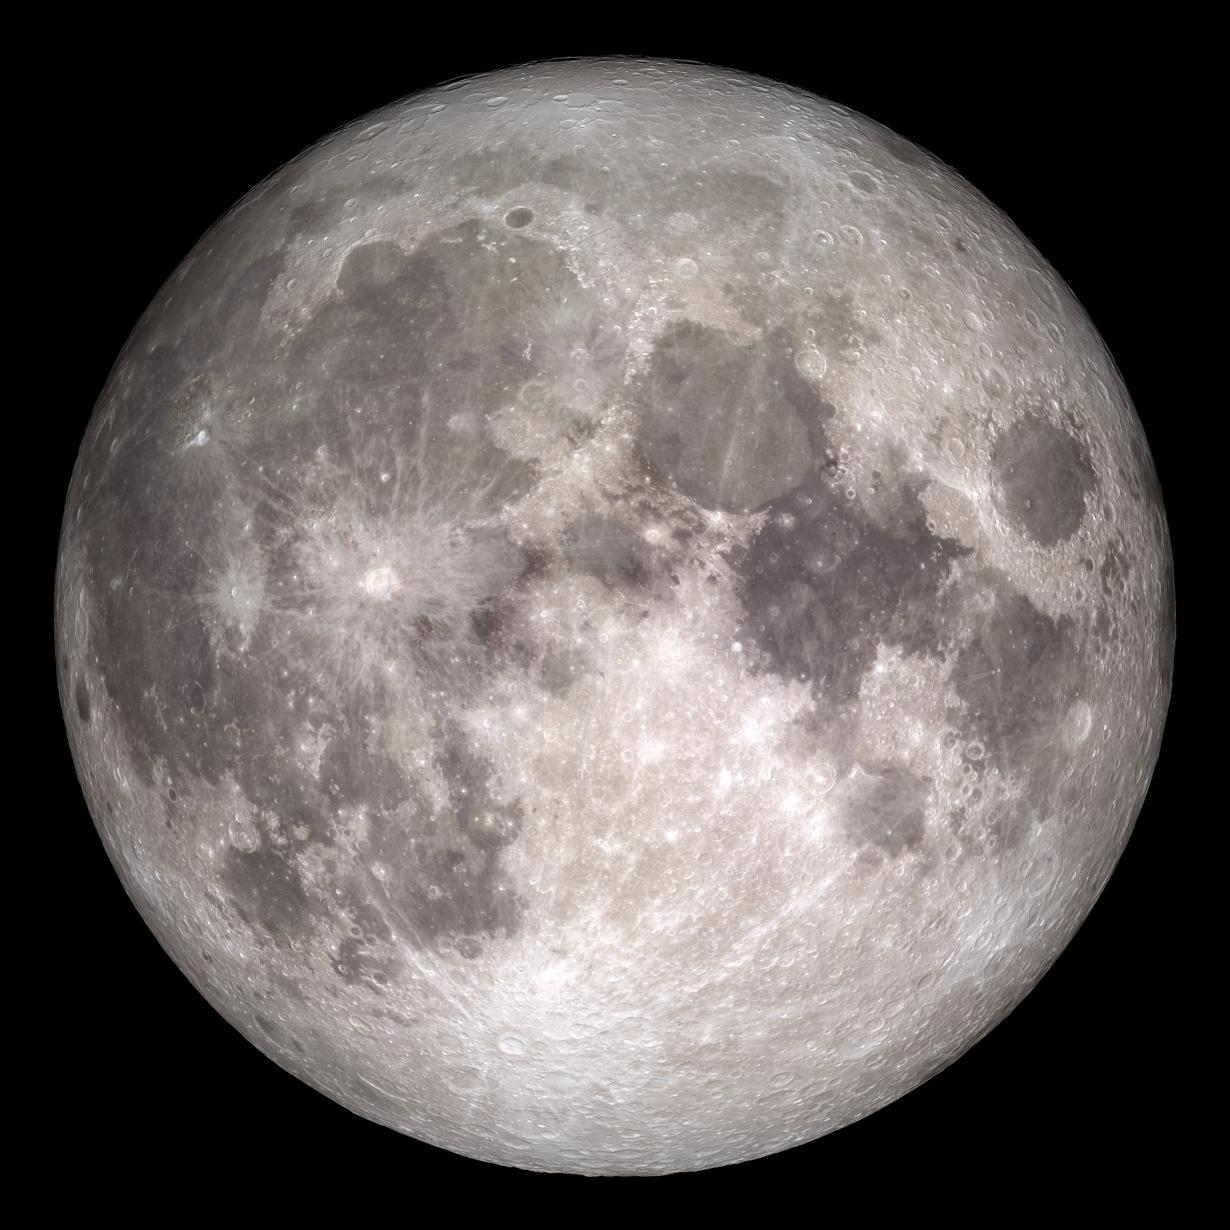 The near side of the Moon, as seen by the cameras aboard NASA's Lunar Reconnaissance Orbiter spacecraft (NASA/GSFC/Arizona State University, 2017)